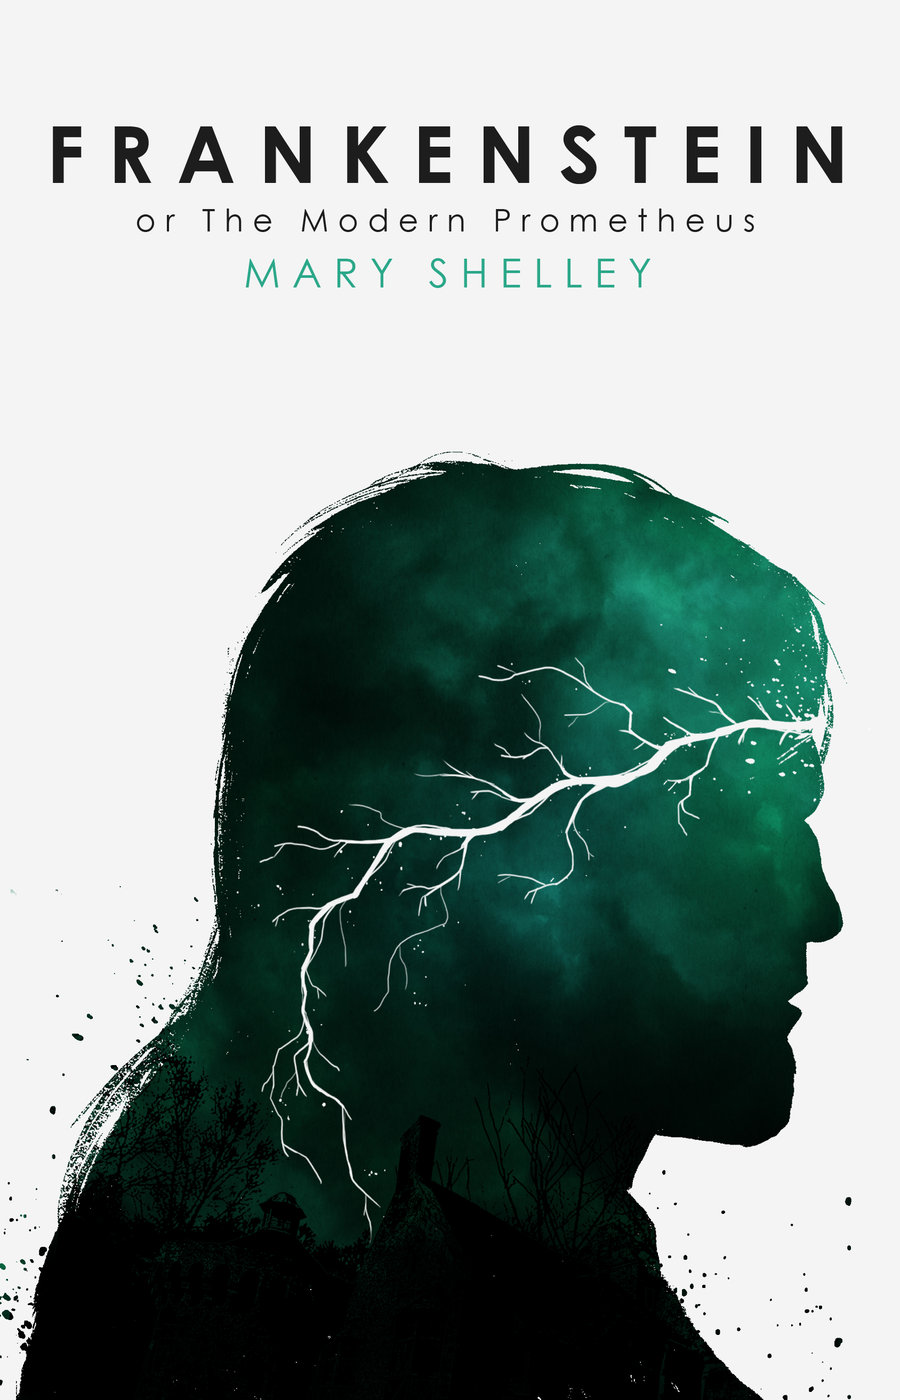 mary shelley on frankenstein